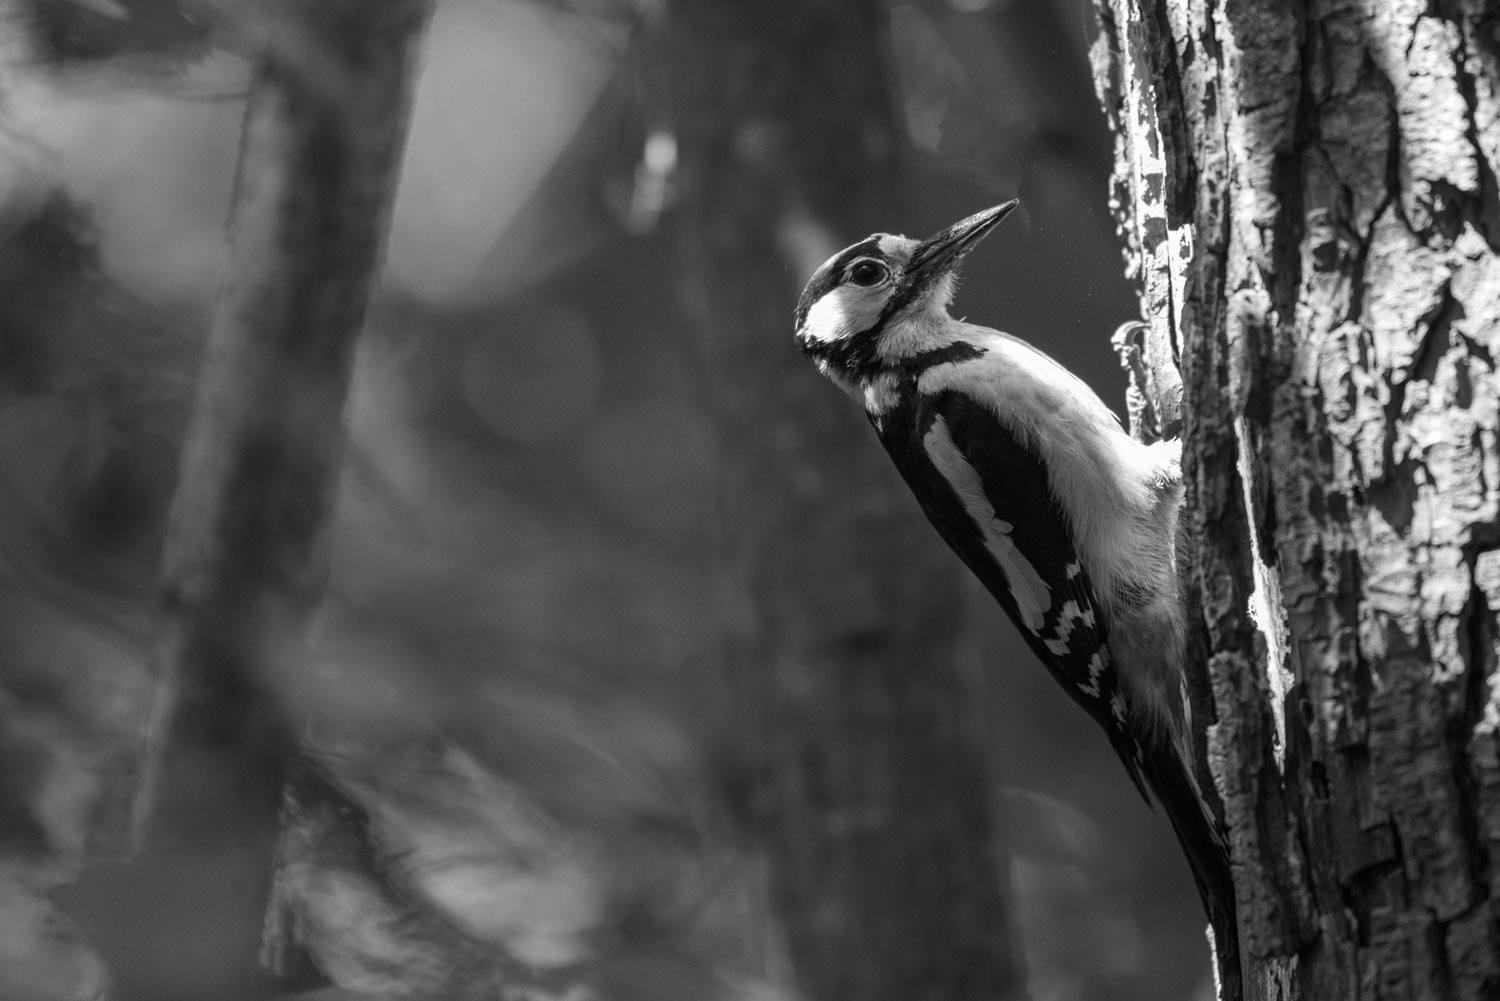 Great spotted woodpecker at nest hole, Sussex Weald, England